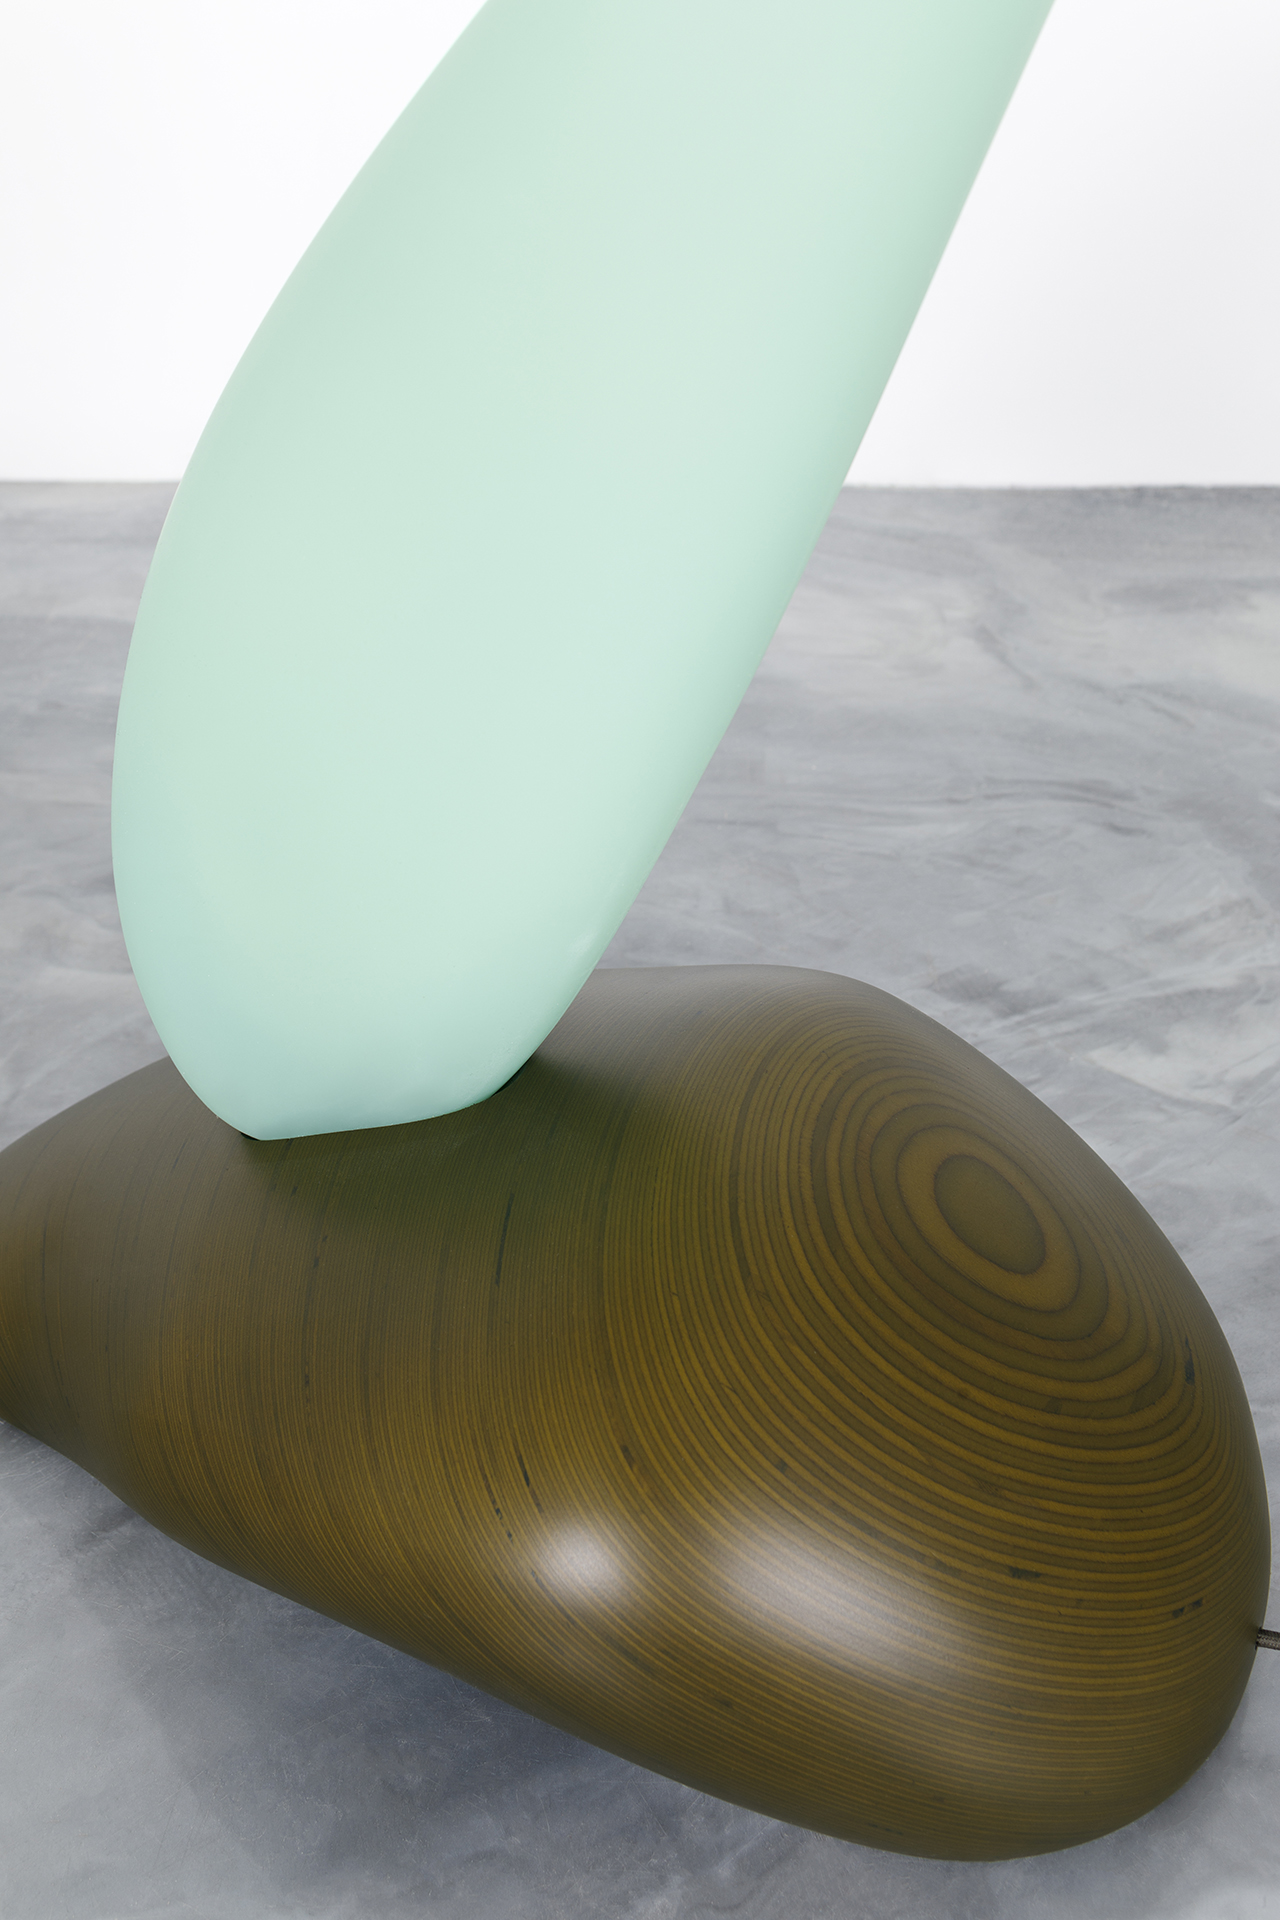 detail of curvaceous abstract floor lamp on concrete floor in front of white wall